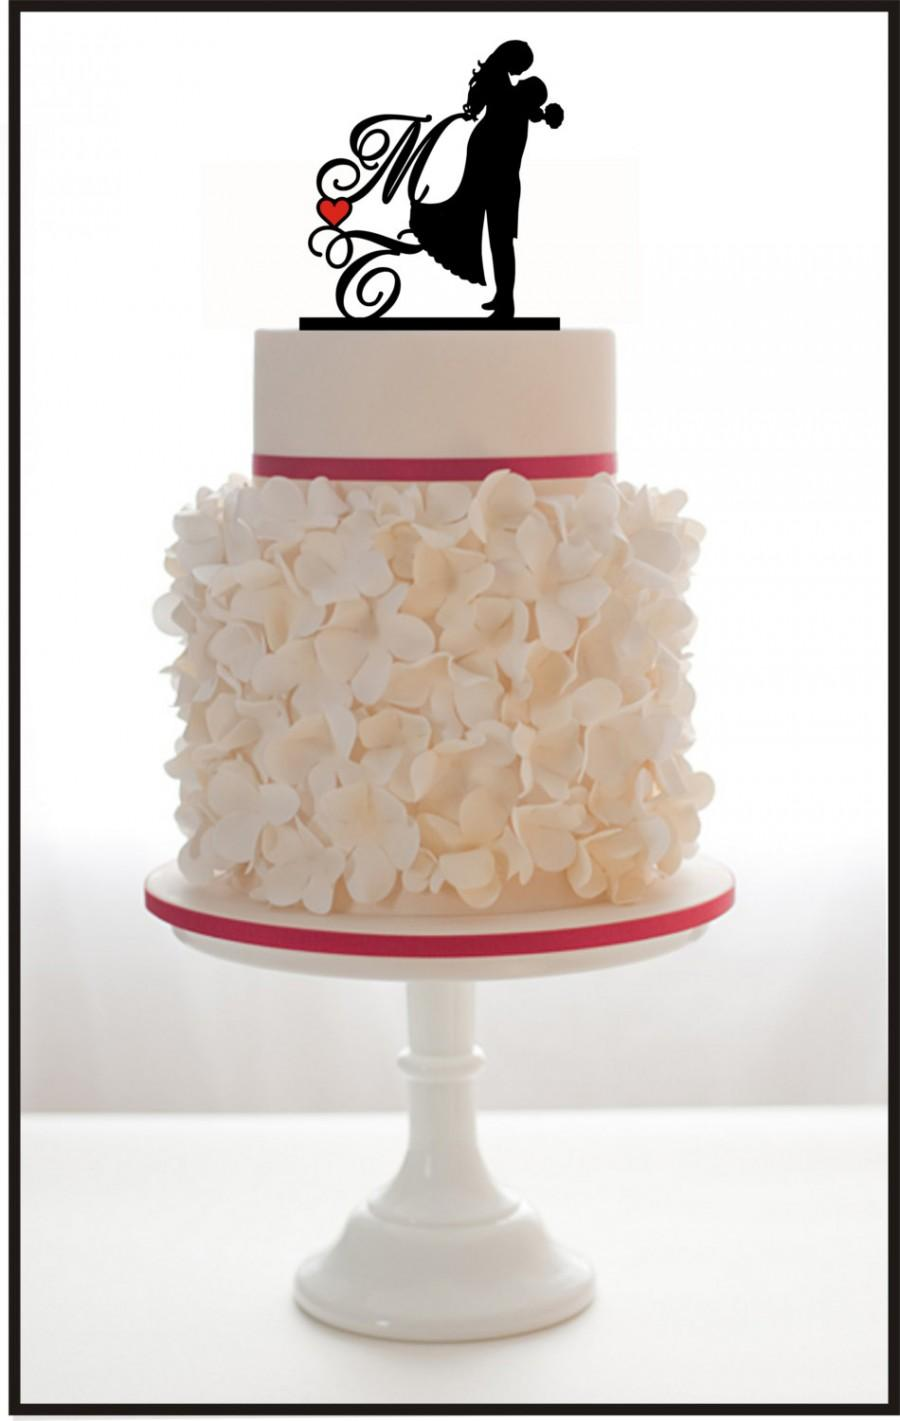 Hochzeit - Custom Cake Topper Silhouette Personalized With Initials, Heart For Wedding or Engagement, choice of color and a FREE base for display